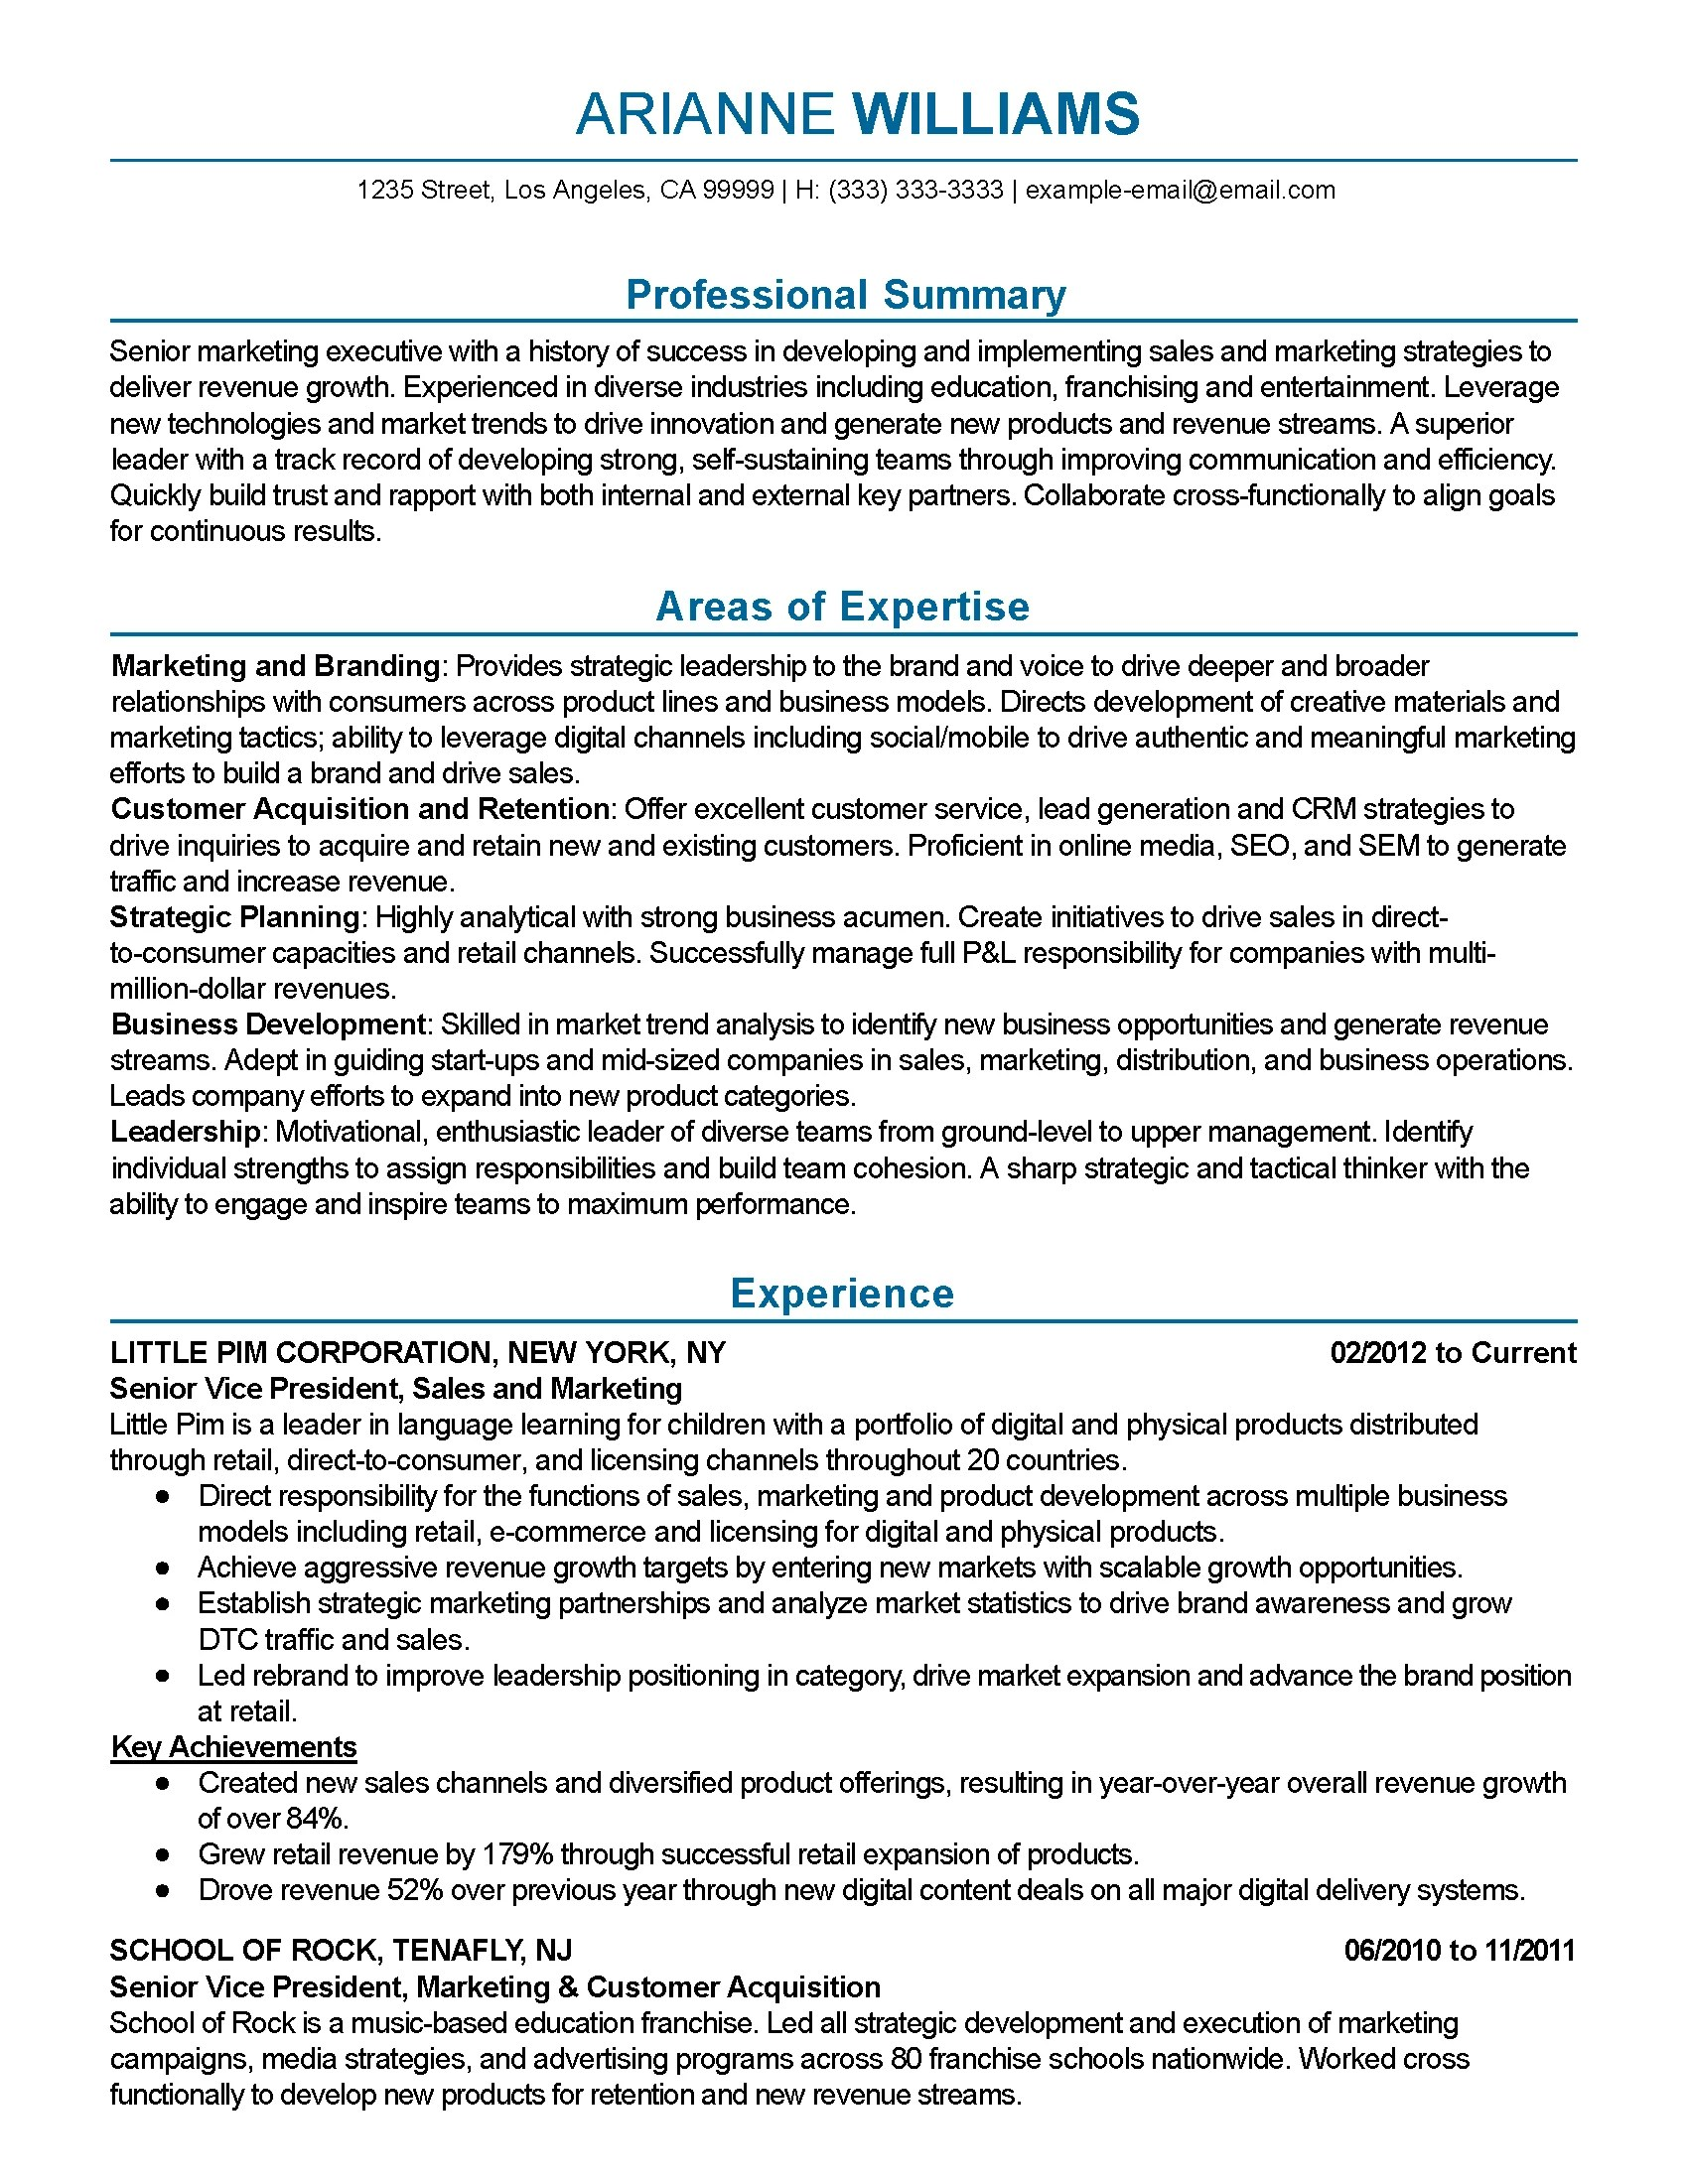 Summary For Marketing Resume Professional Senior Marketing Executive Templates To